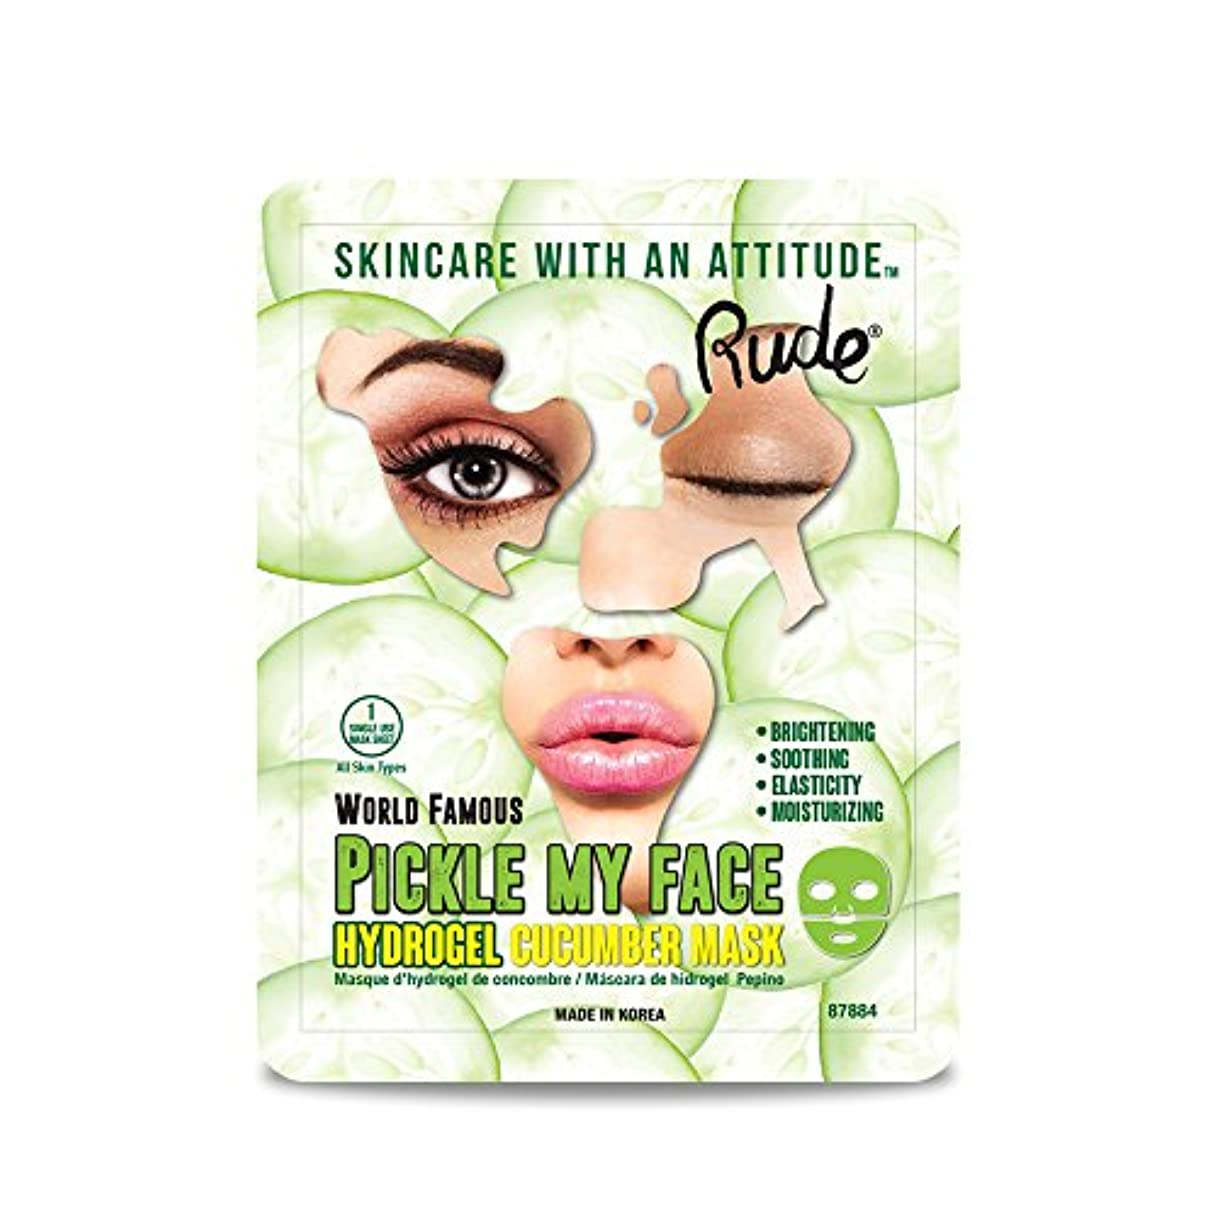 撤回する成分(3 Pack) RUDE Pickle My Face Hydrogel Cucumber Mask (並行輸入品)